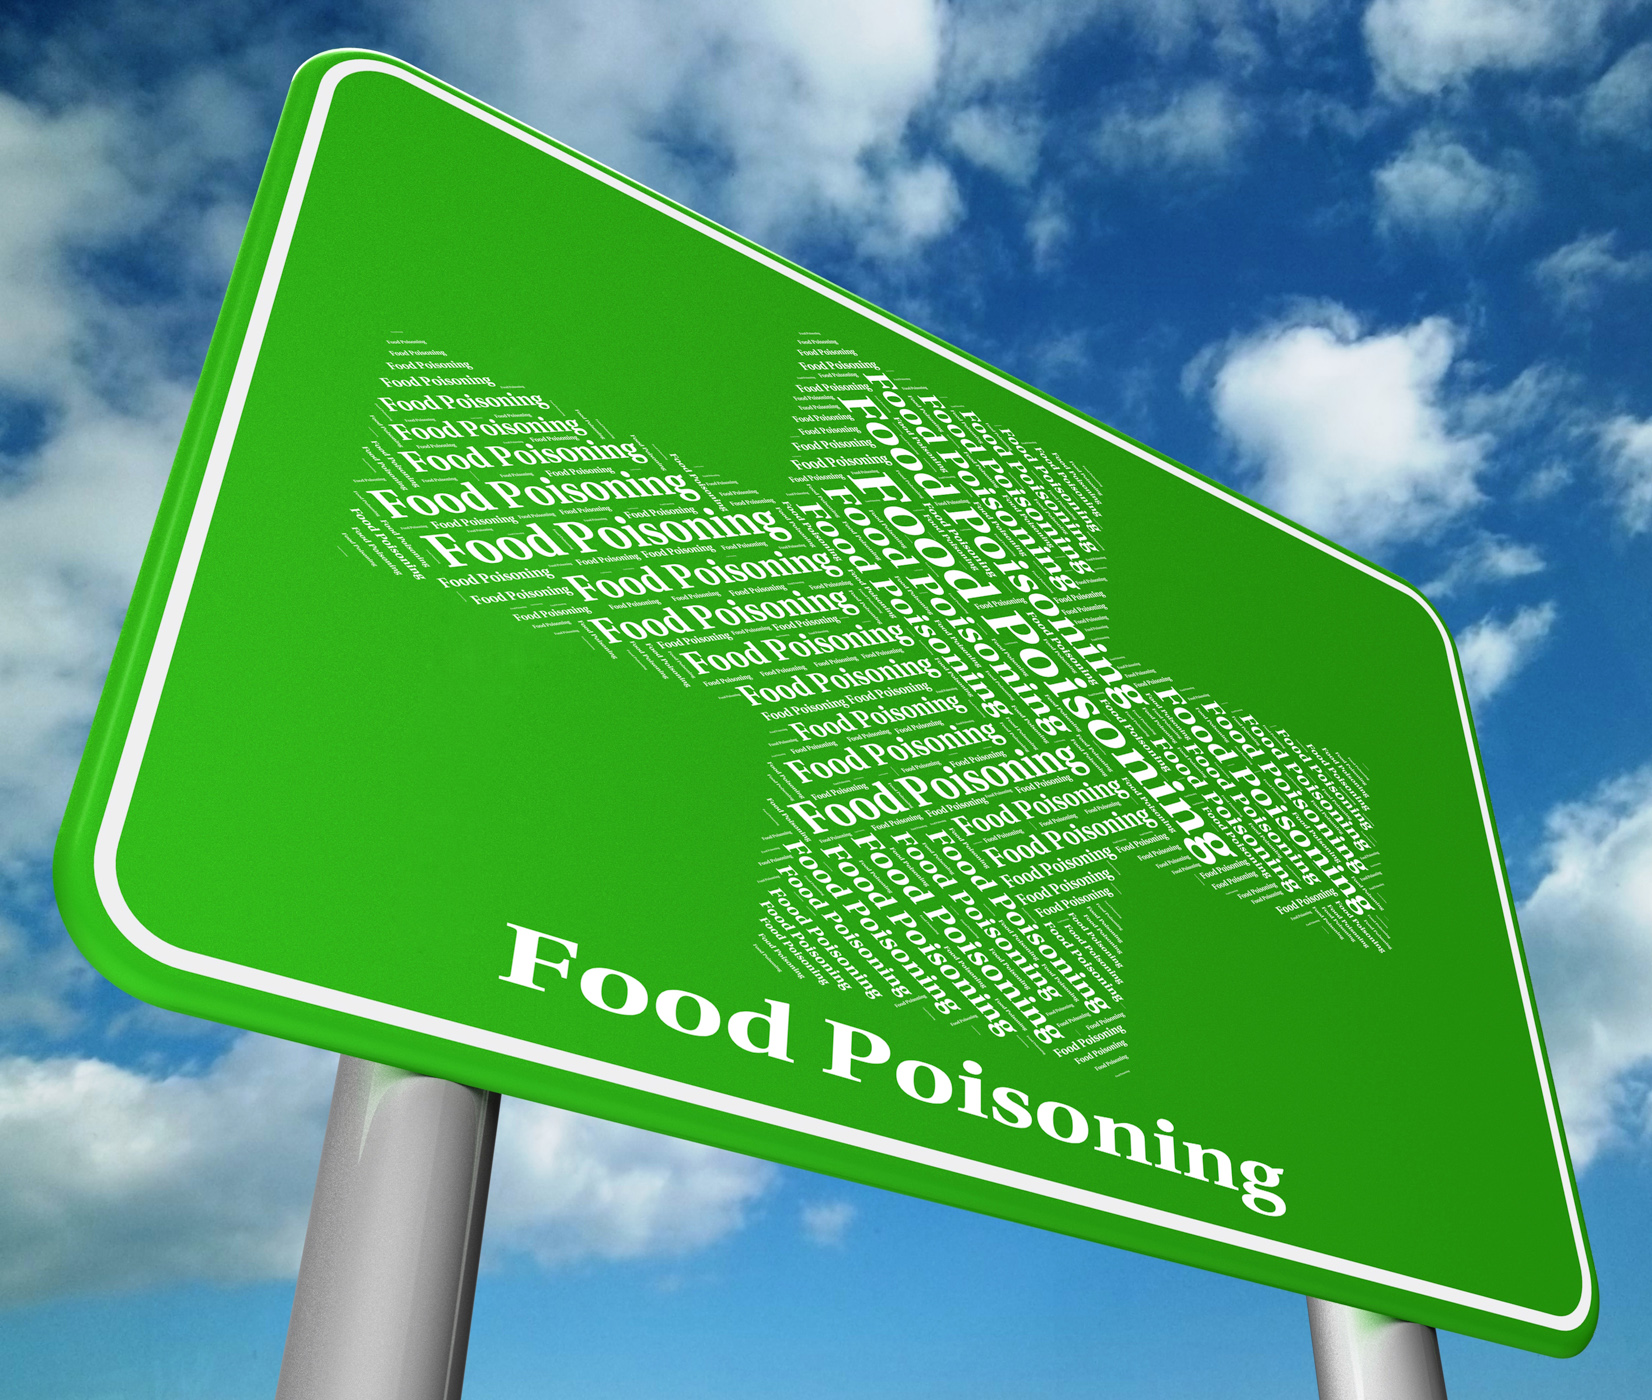 Food poisoning represents ill health and ailments photo